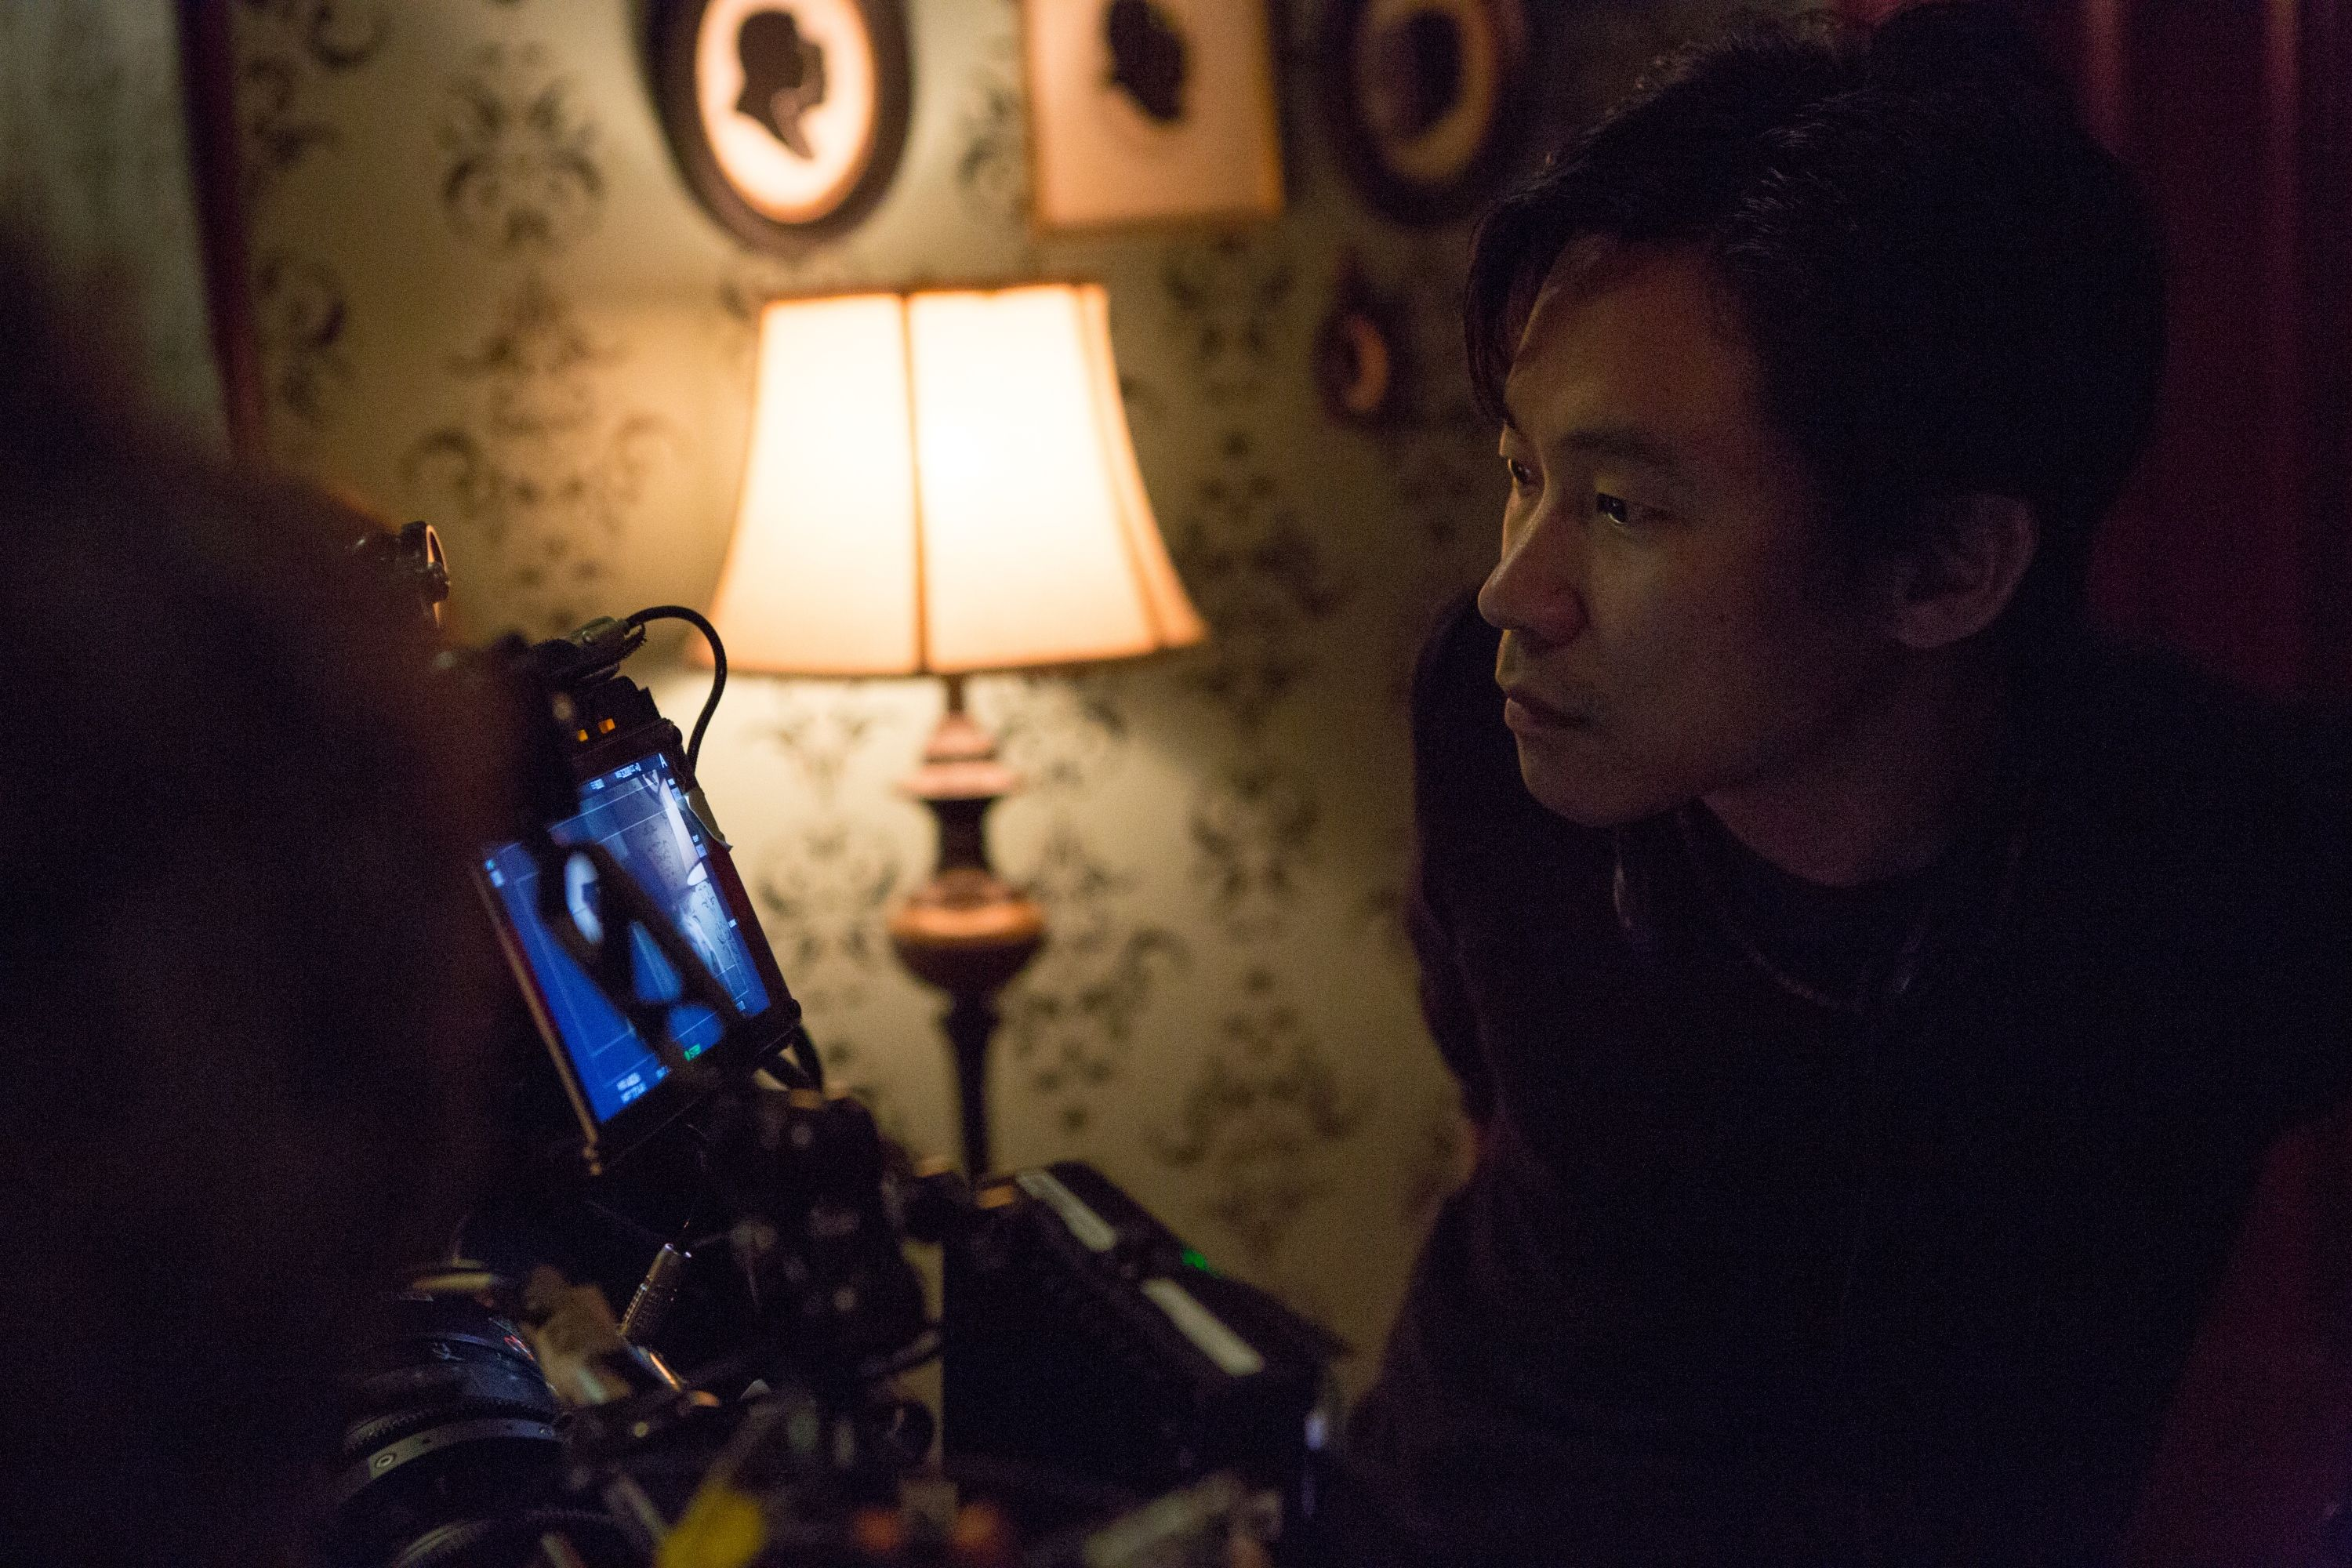 james wan filmsjames wan фильмы, james wan films, james wan filmleri, james wan wiki, james wan net worth, james wan director, james wan imdb, james wan wife, james wan wikipedia, james wan dead space, james wan csfd, james wan youtube, james wan the nun, james wan family, james wan instagram, james wan twitter, james wan kinopoisk, james wan mortal kombat, james wan filmography, james wan movies